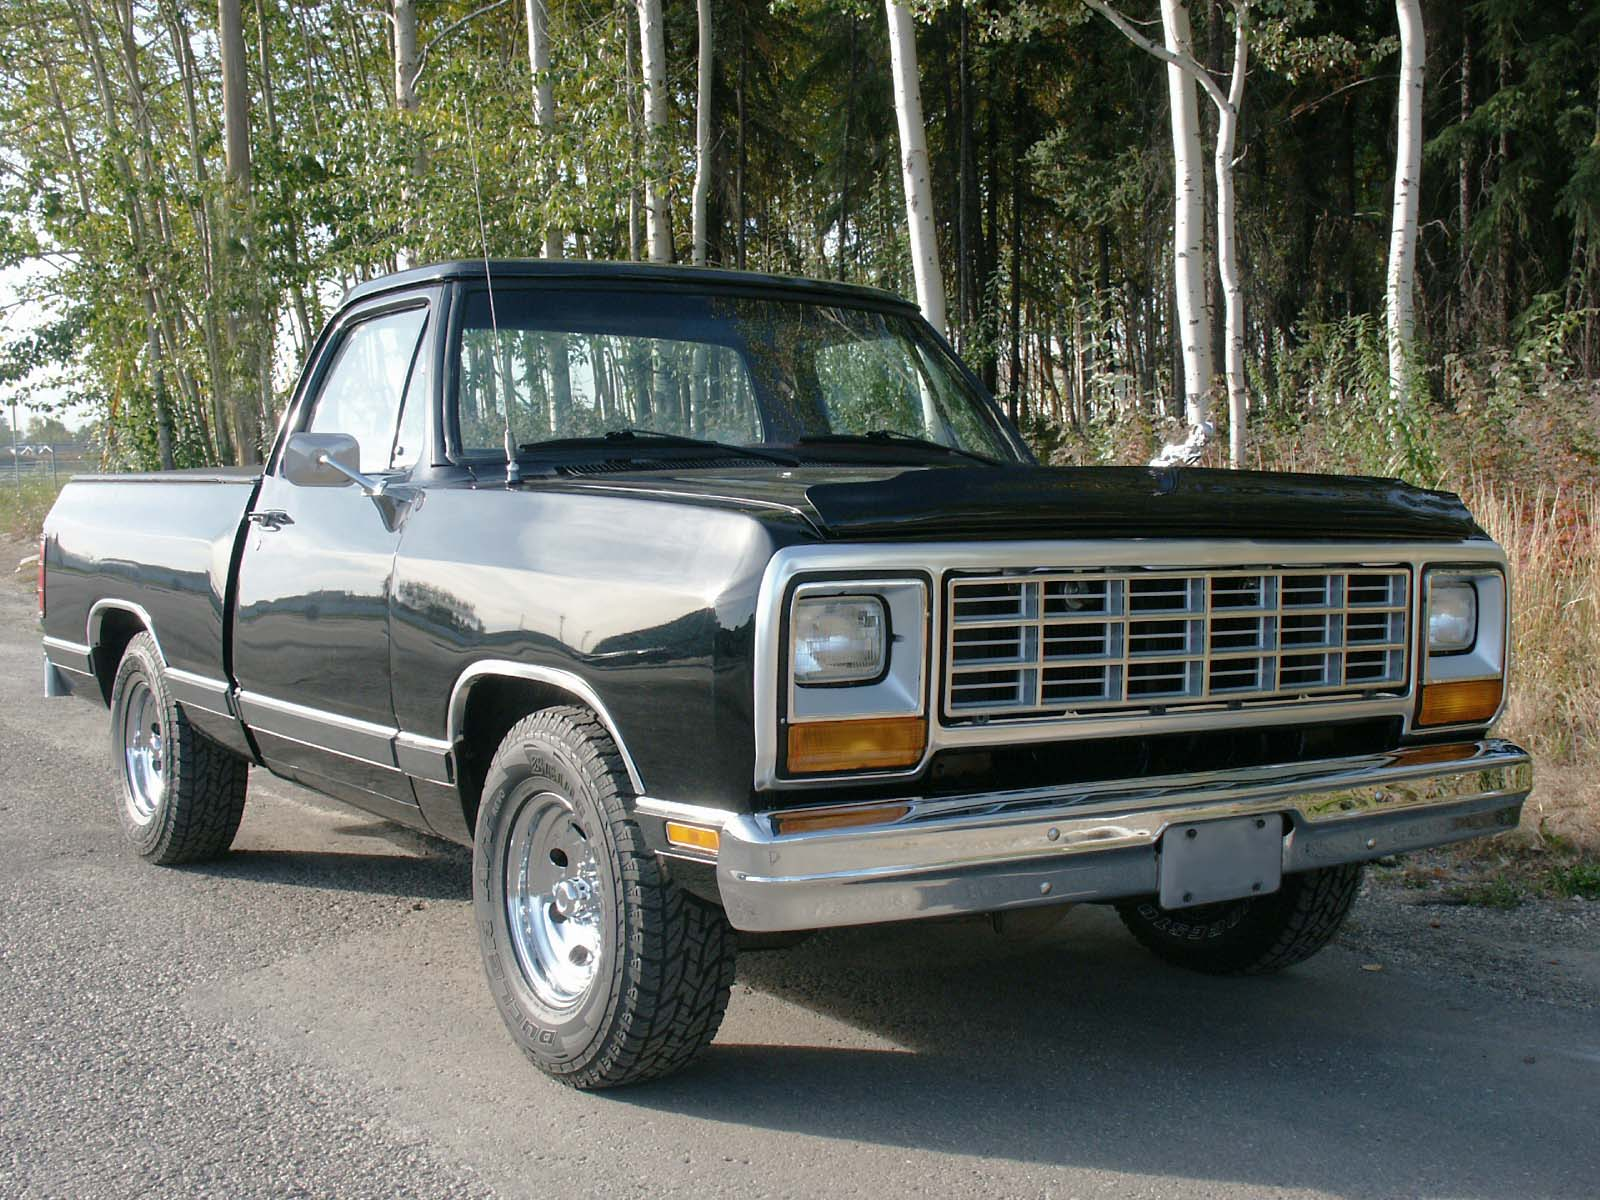 1993 Dodge Ram 50 Pickup Information And Photos Zombiedrive 1980 Truck Parts 2